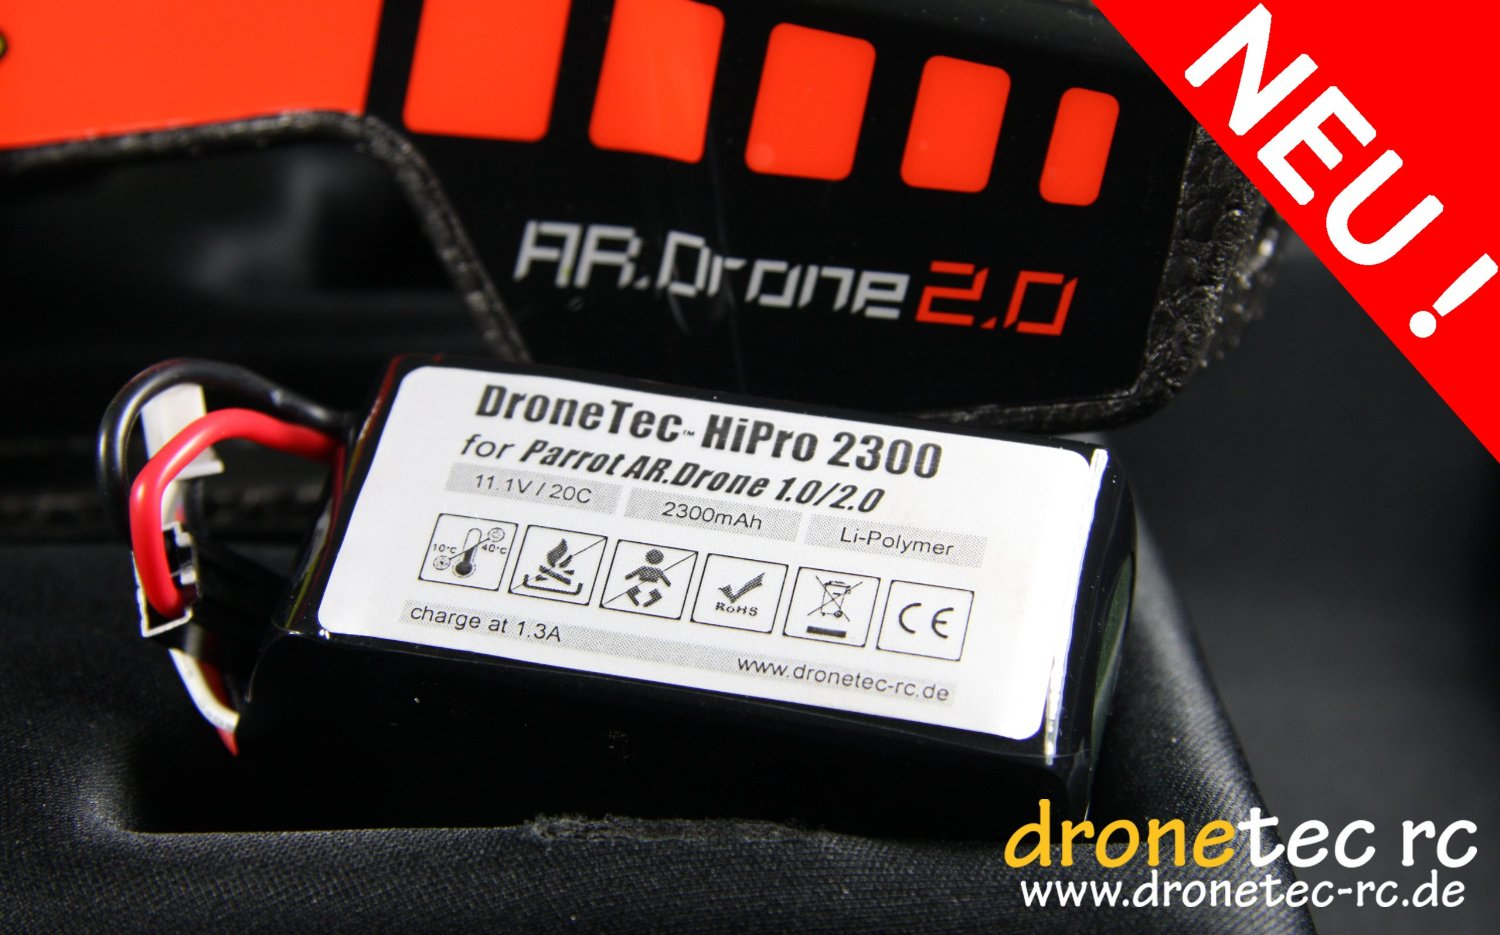 ar drone 2 0 uk with Dro Ec Hipro 2300 Mah Akku Fuer Parrot Ar on Hexacopters Quadcopters And Octocopters What Is The Difference together with 3D Printed Surveillance Drone Takes Flight besides Funny motherhood gifts t shirts 235261313236921734 as well Mini Cc3d Atom Openpilot Fpv Flight Controller Bent Pin P 2975 additionally Camera Drones.